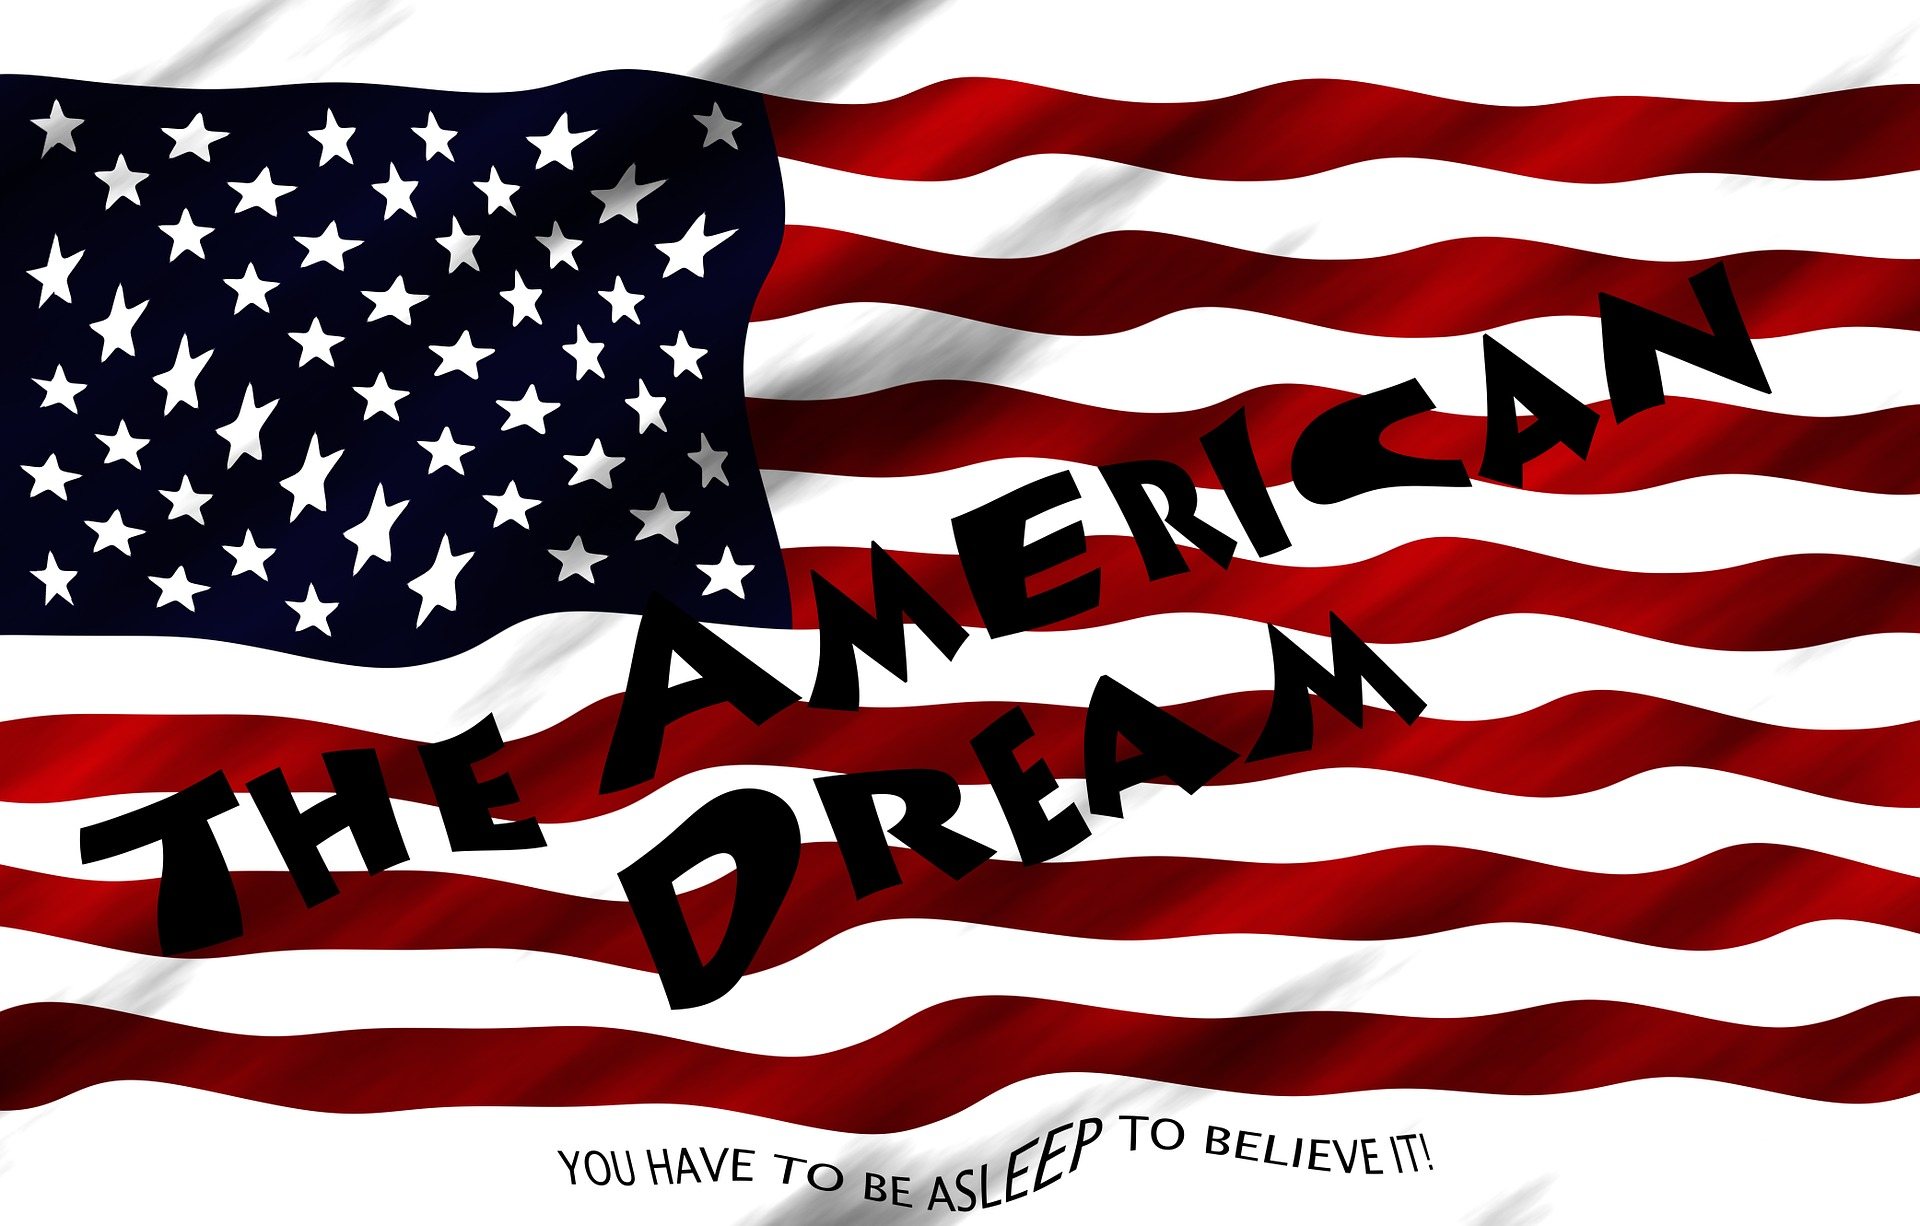 the history of the american dream Failure of the american dream is an exhibition featuring video and installation created in 2014 by phil america while he lived in the jungle, the nickname for a tent city near silicon valley in san jose, california.